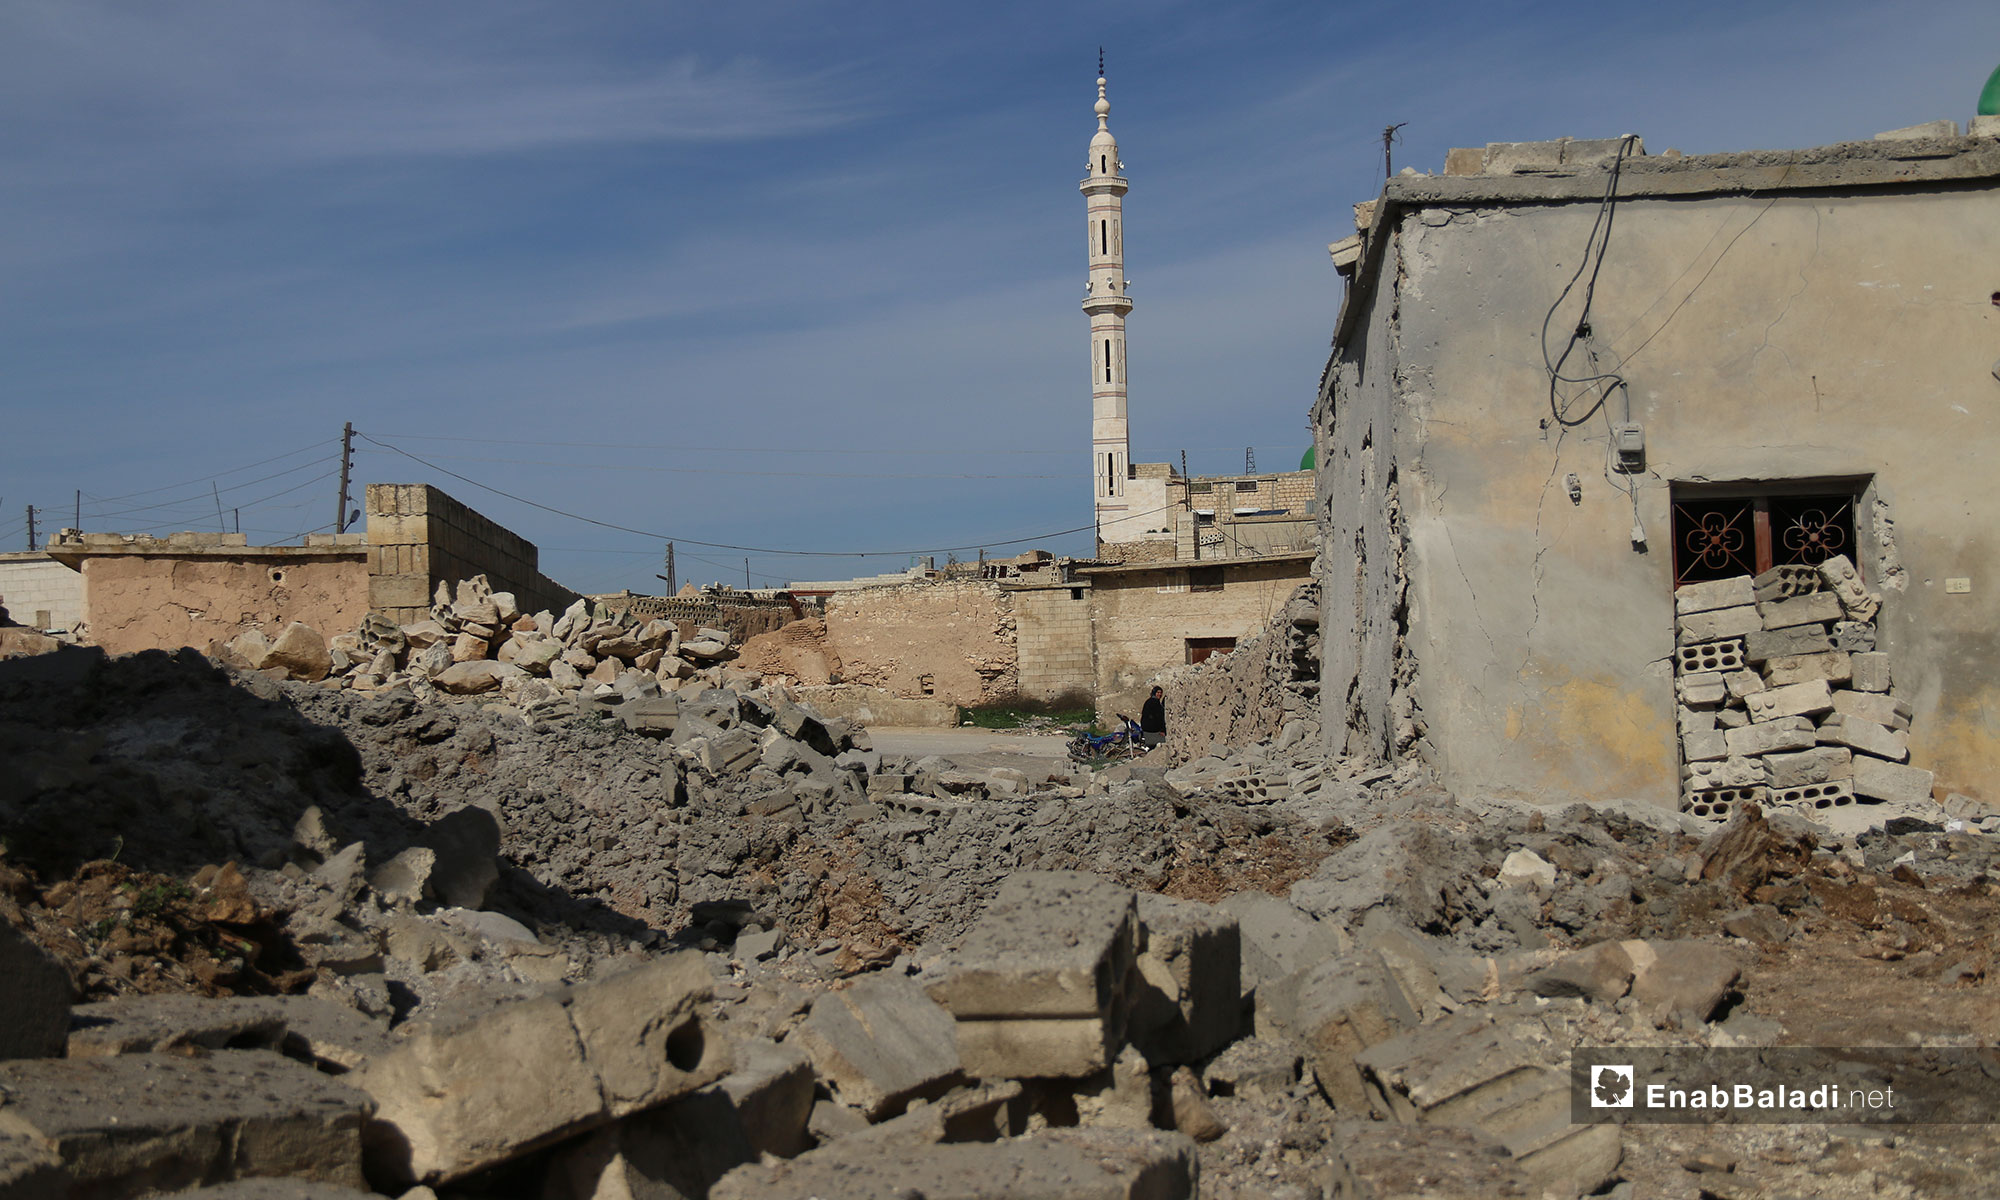 The destruction caused by the shelling of the town of al-Tah, rural Idlib – February 4, 2019 (Enab Baladi)